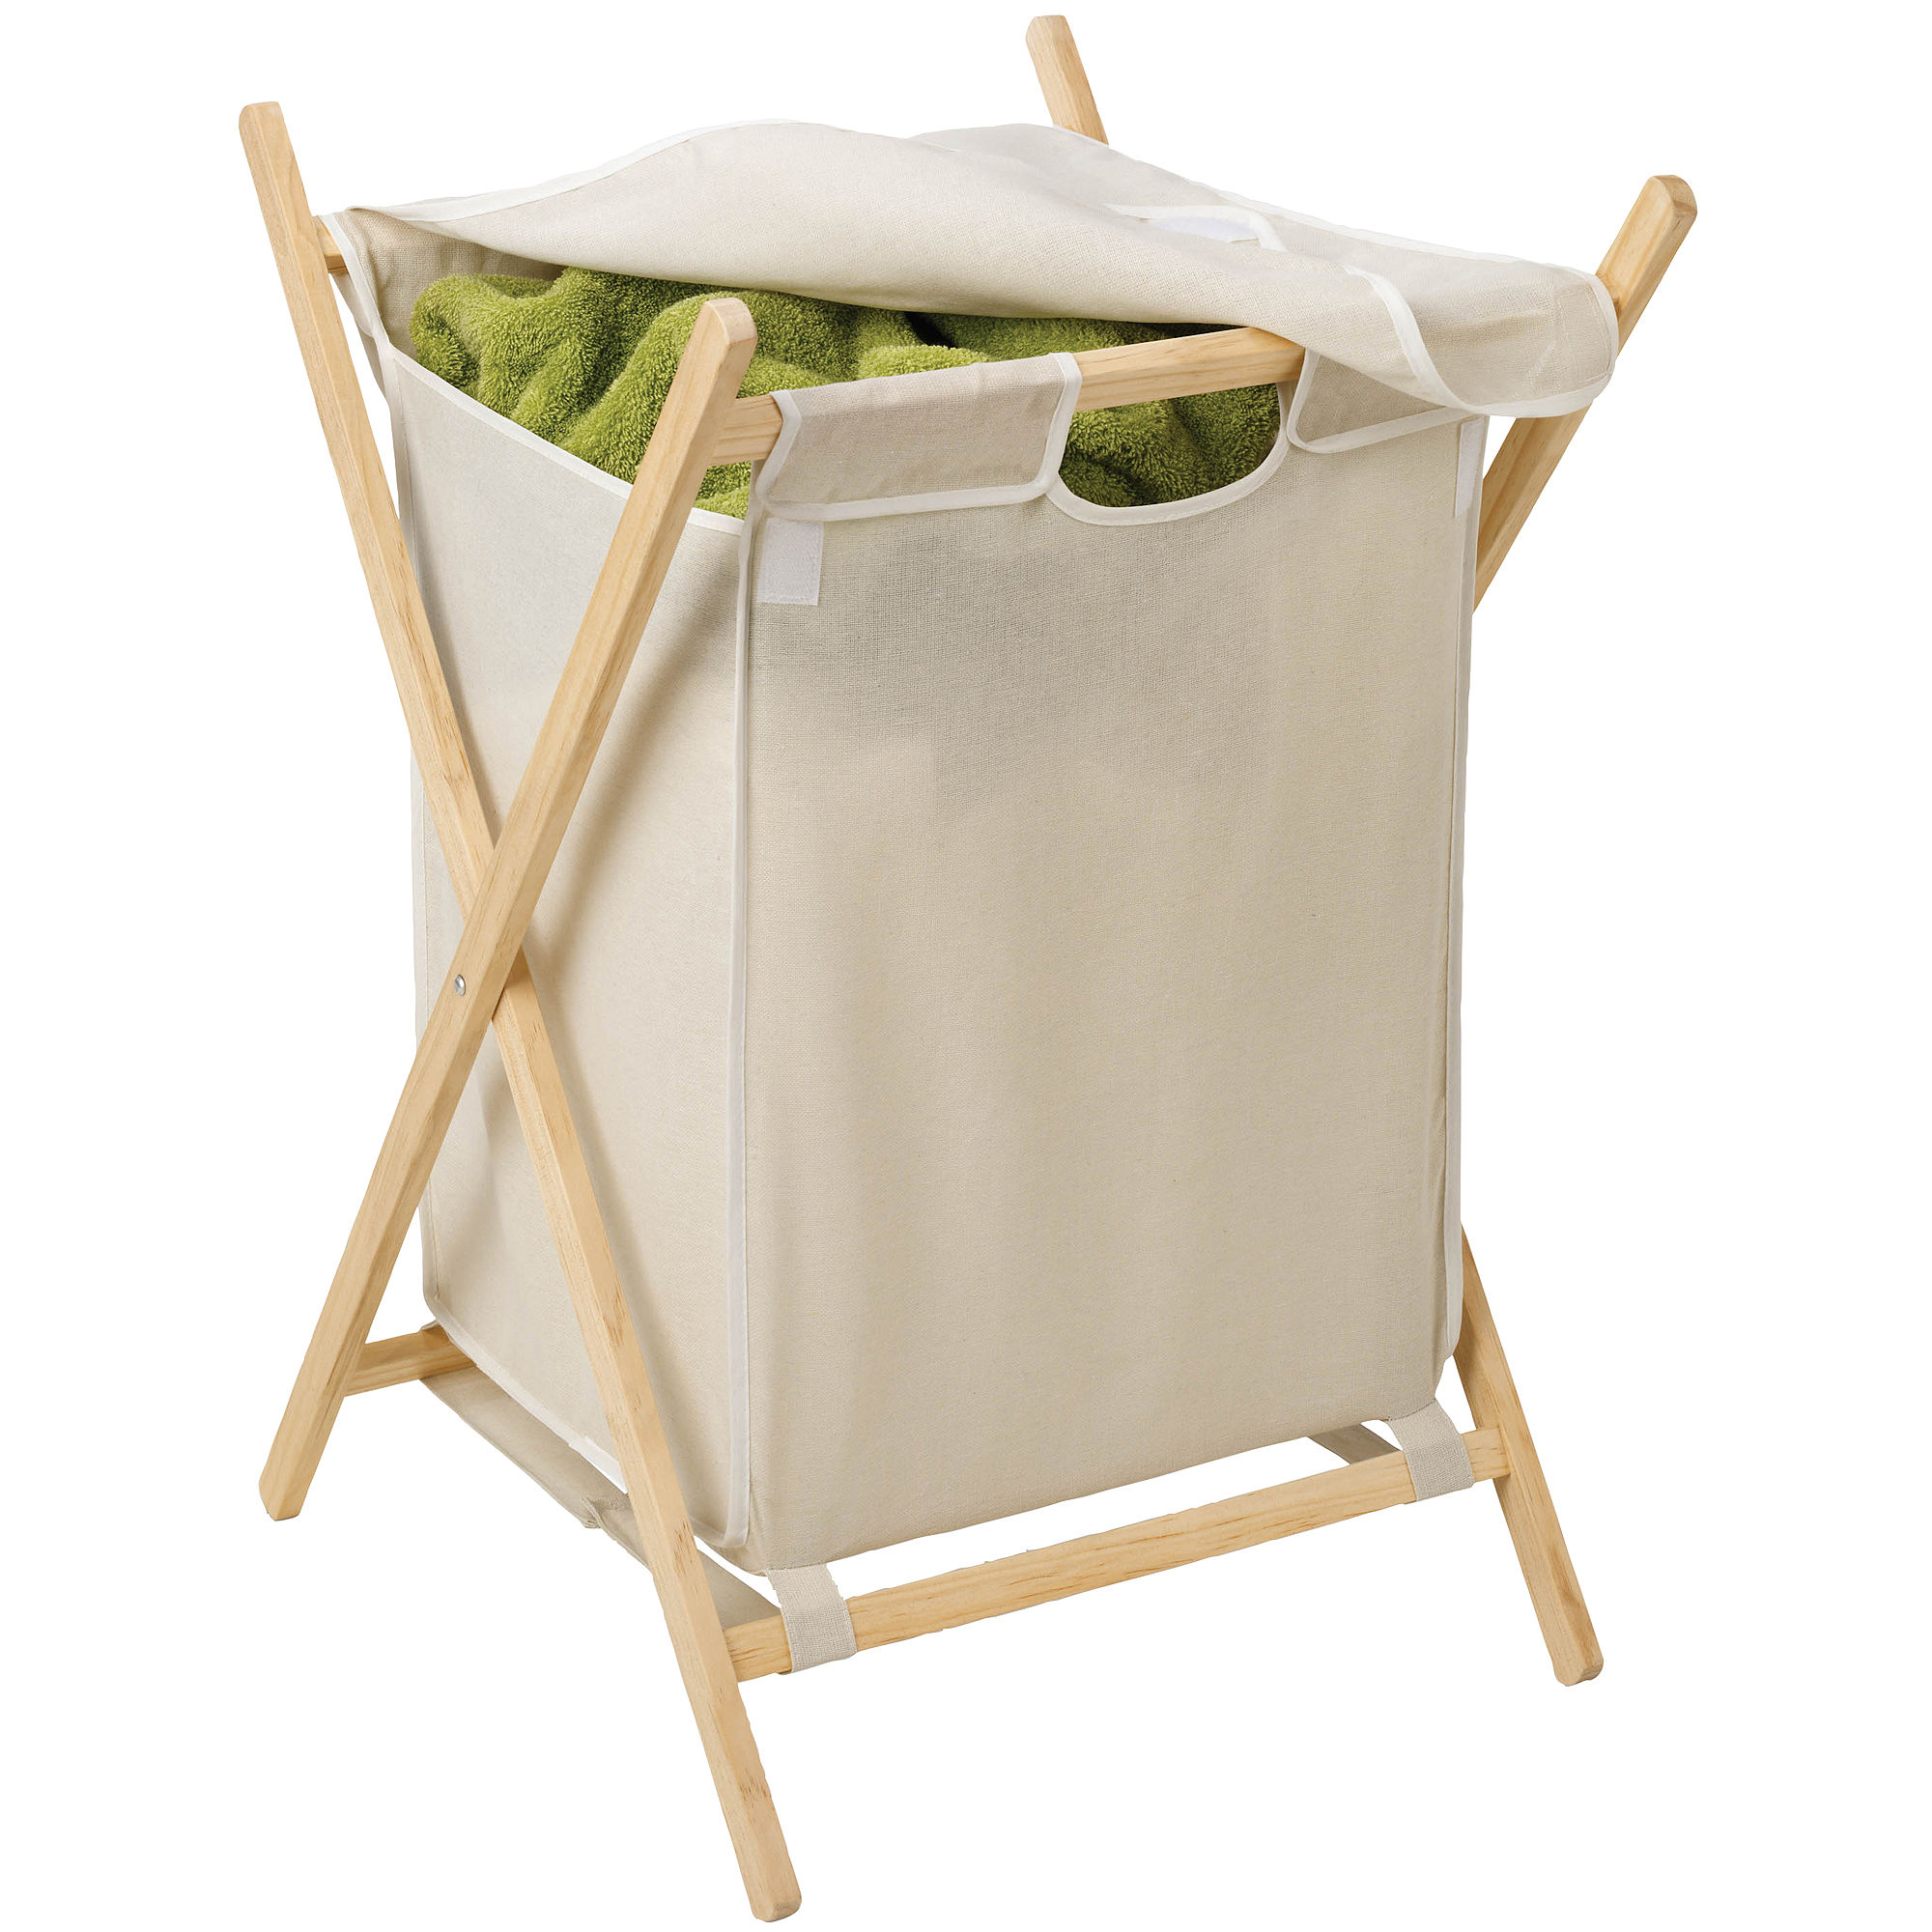 Honey-Can-Do Folding Wooden Hamper